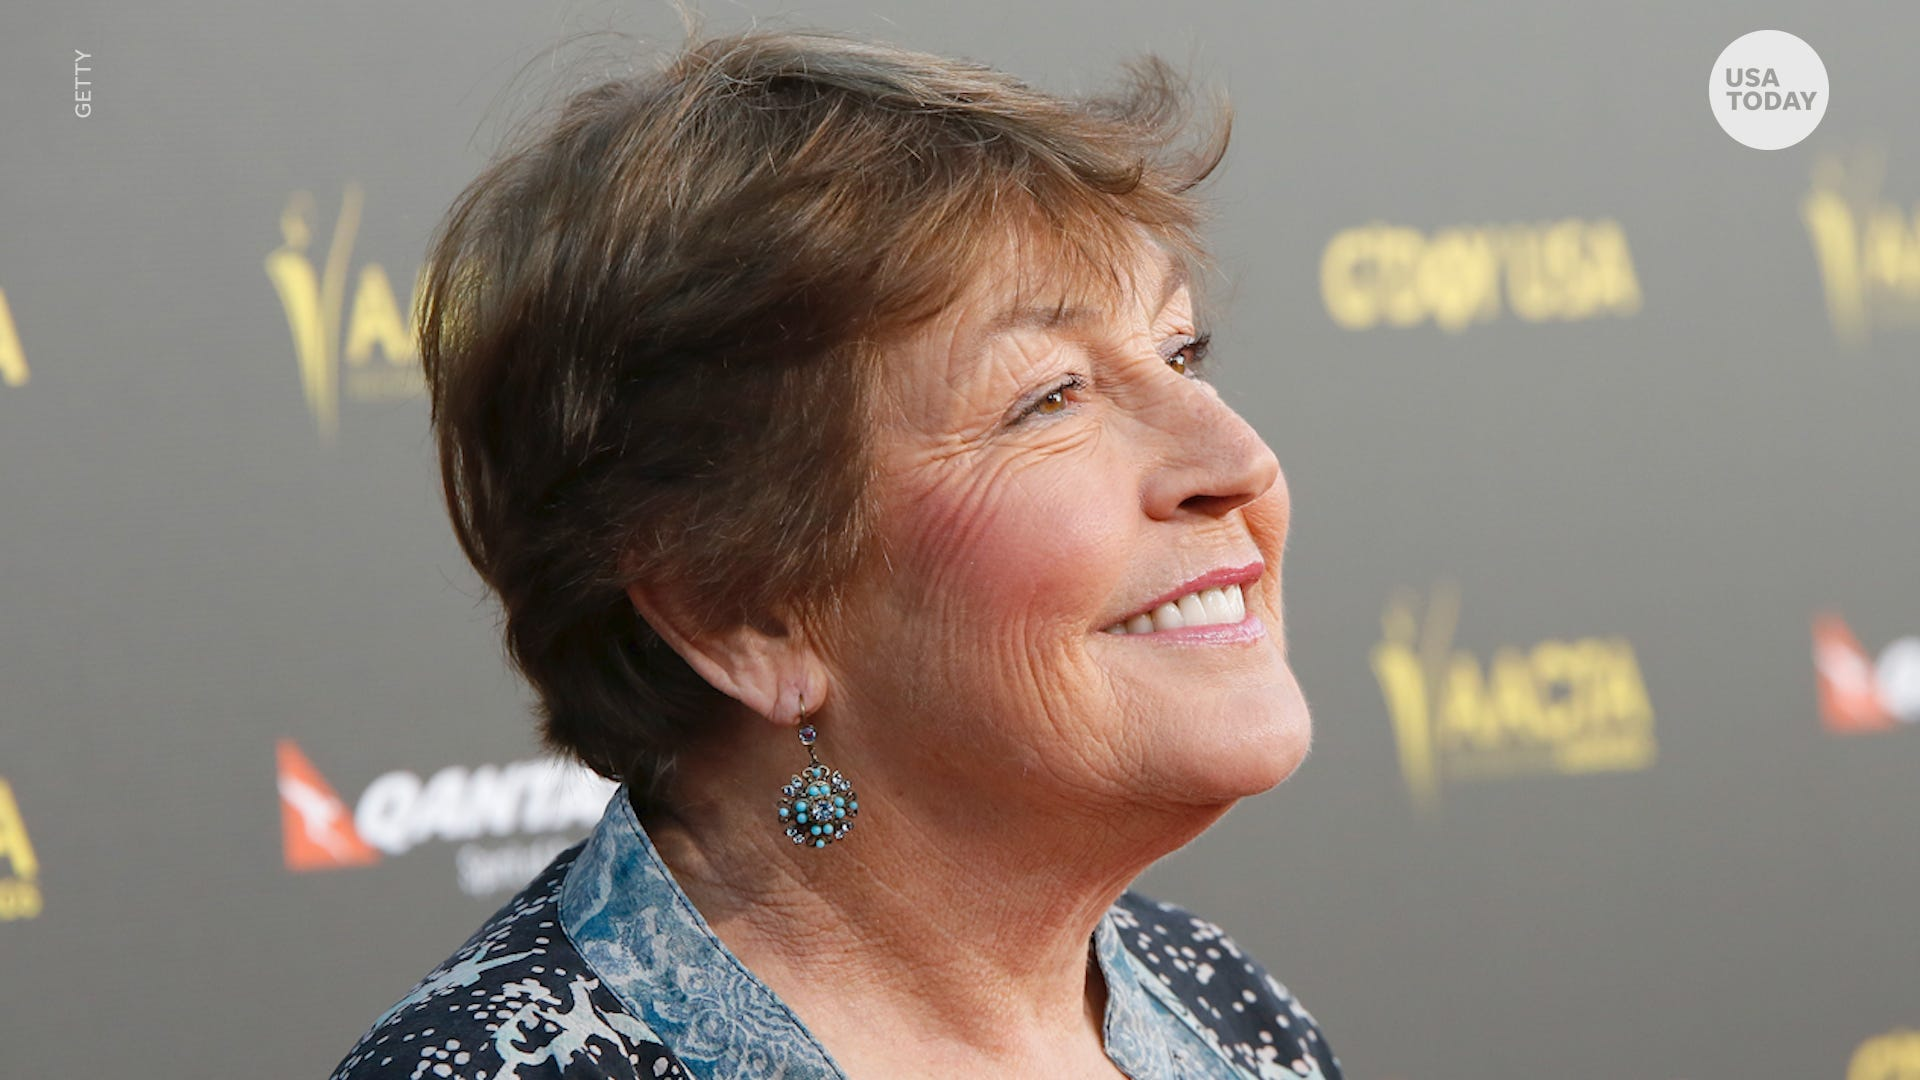 Australian singer Helen Reddy, feminist icon known for 'I Am Woman,' dies at age 78